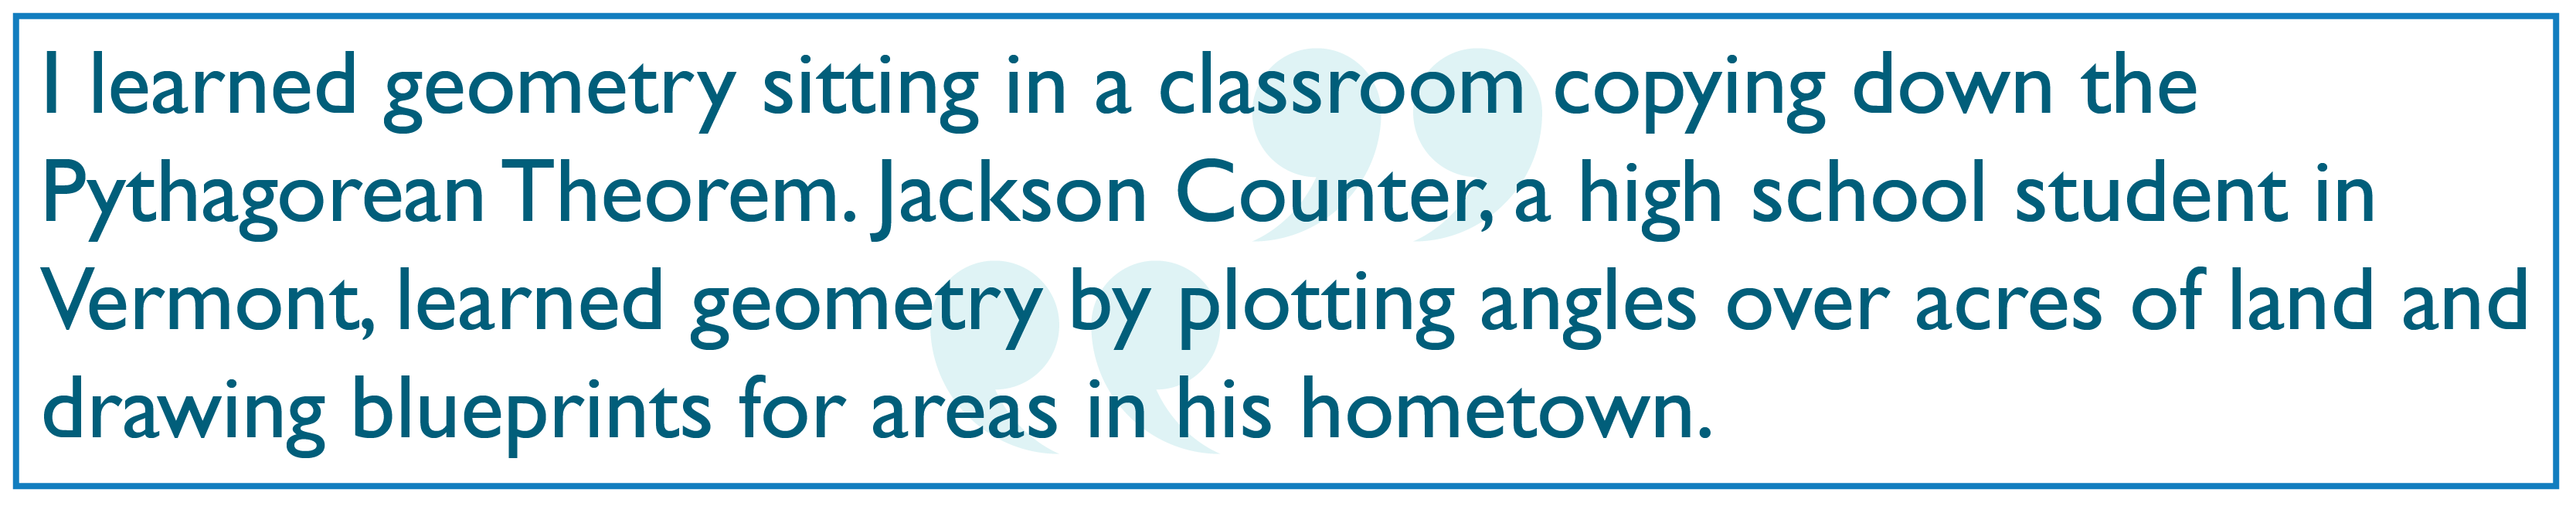 I learned geometry sitting in a classroom copying down the Pythagorean Theorem. Jackson Counter, a high school student in Vermont, learned geometry by plotting angles over acres of land and drawing blueprints for areas in his hometown.